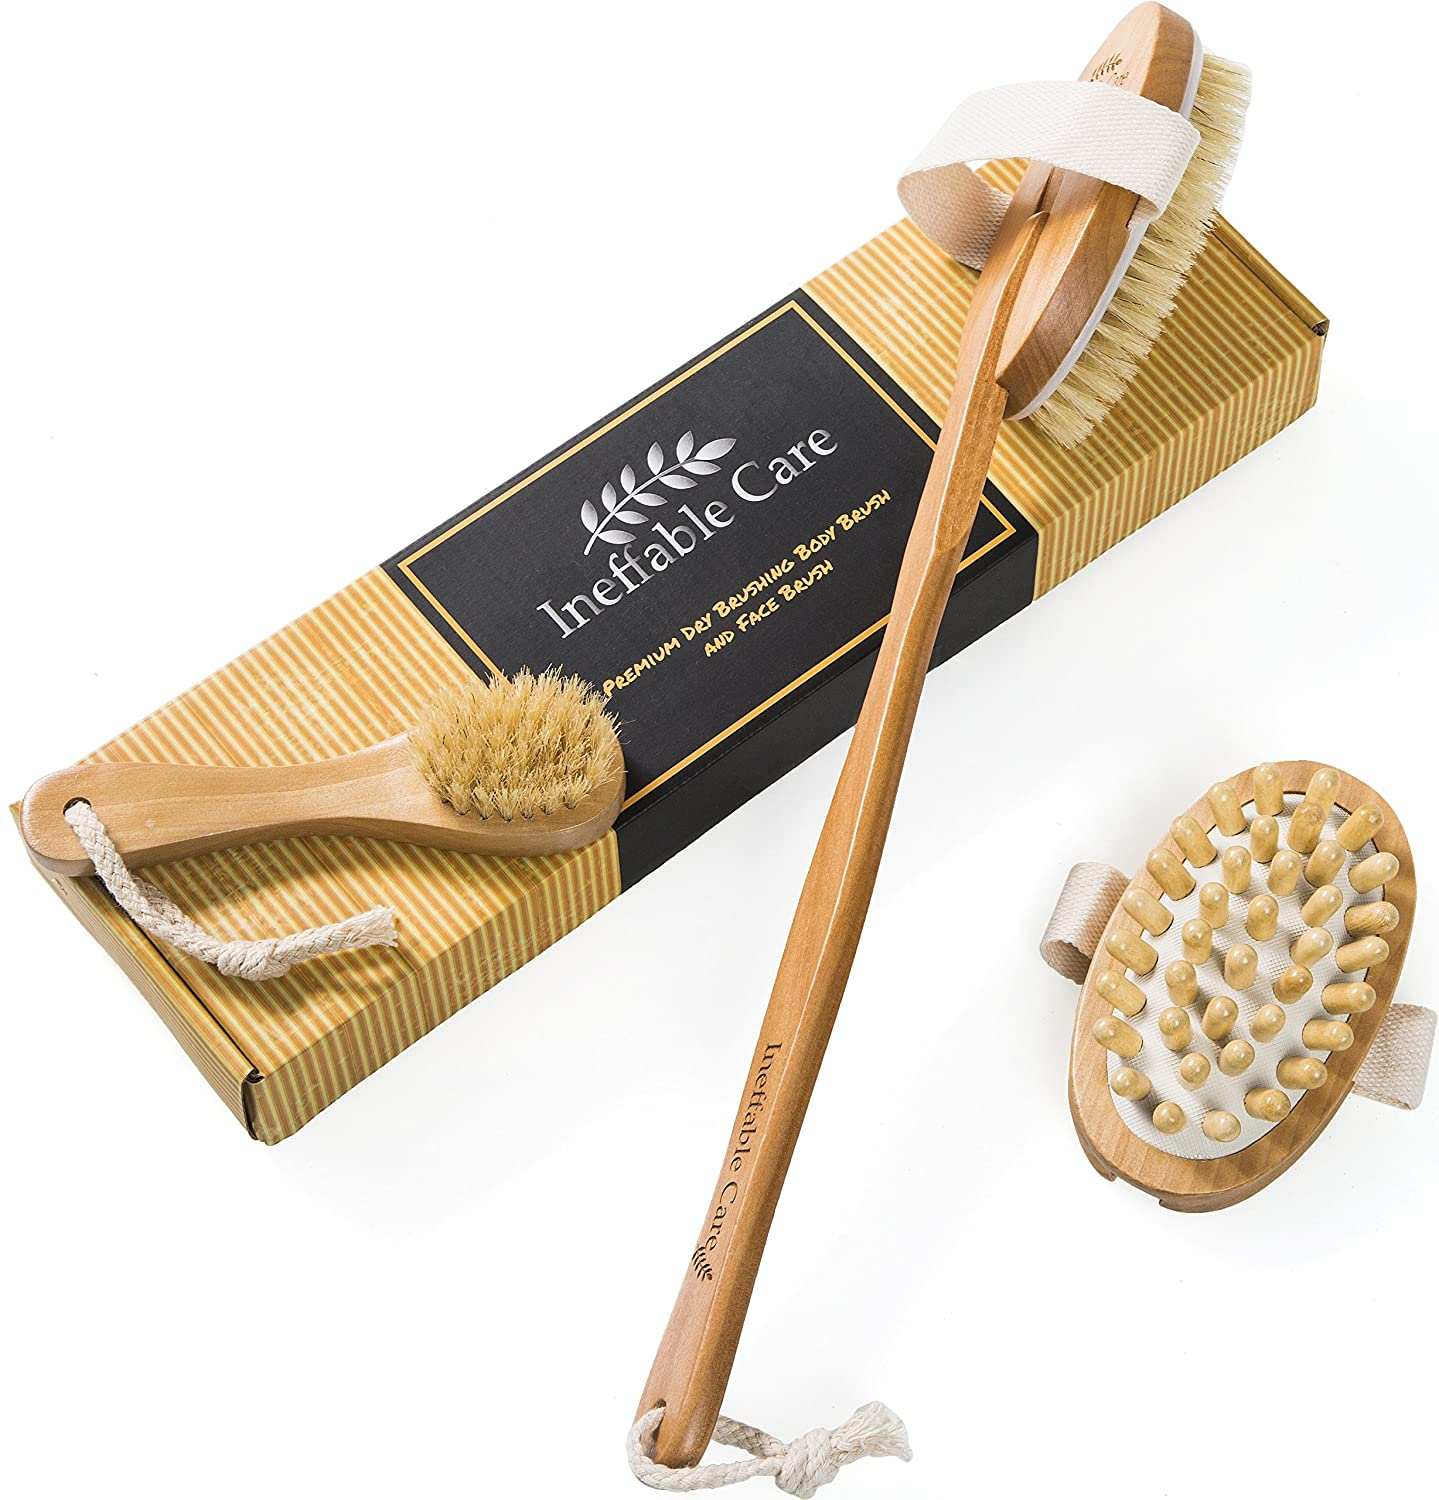 Dry Brushing Body Brush for Dry Skin Brushing & Exfoliating with 100% Natural Boar Bristles & Long Handle kit - Back Brush Scrubber, Bath & Shower Brush, Face Brush, Cellulite Massager Brush Gift Set Ineffable Care